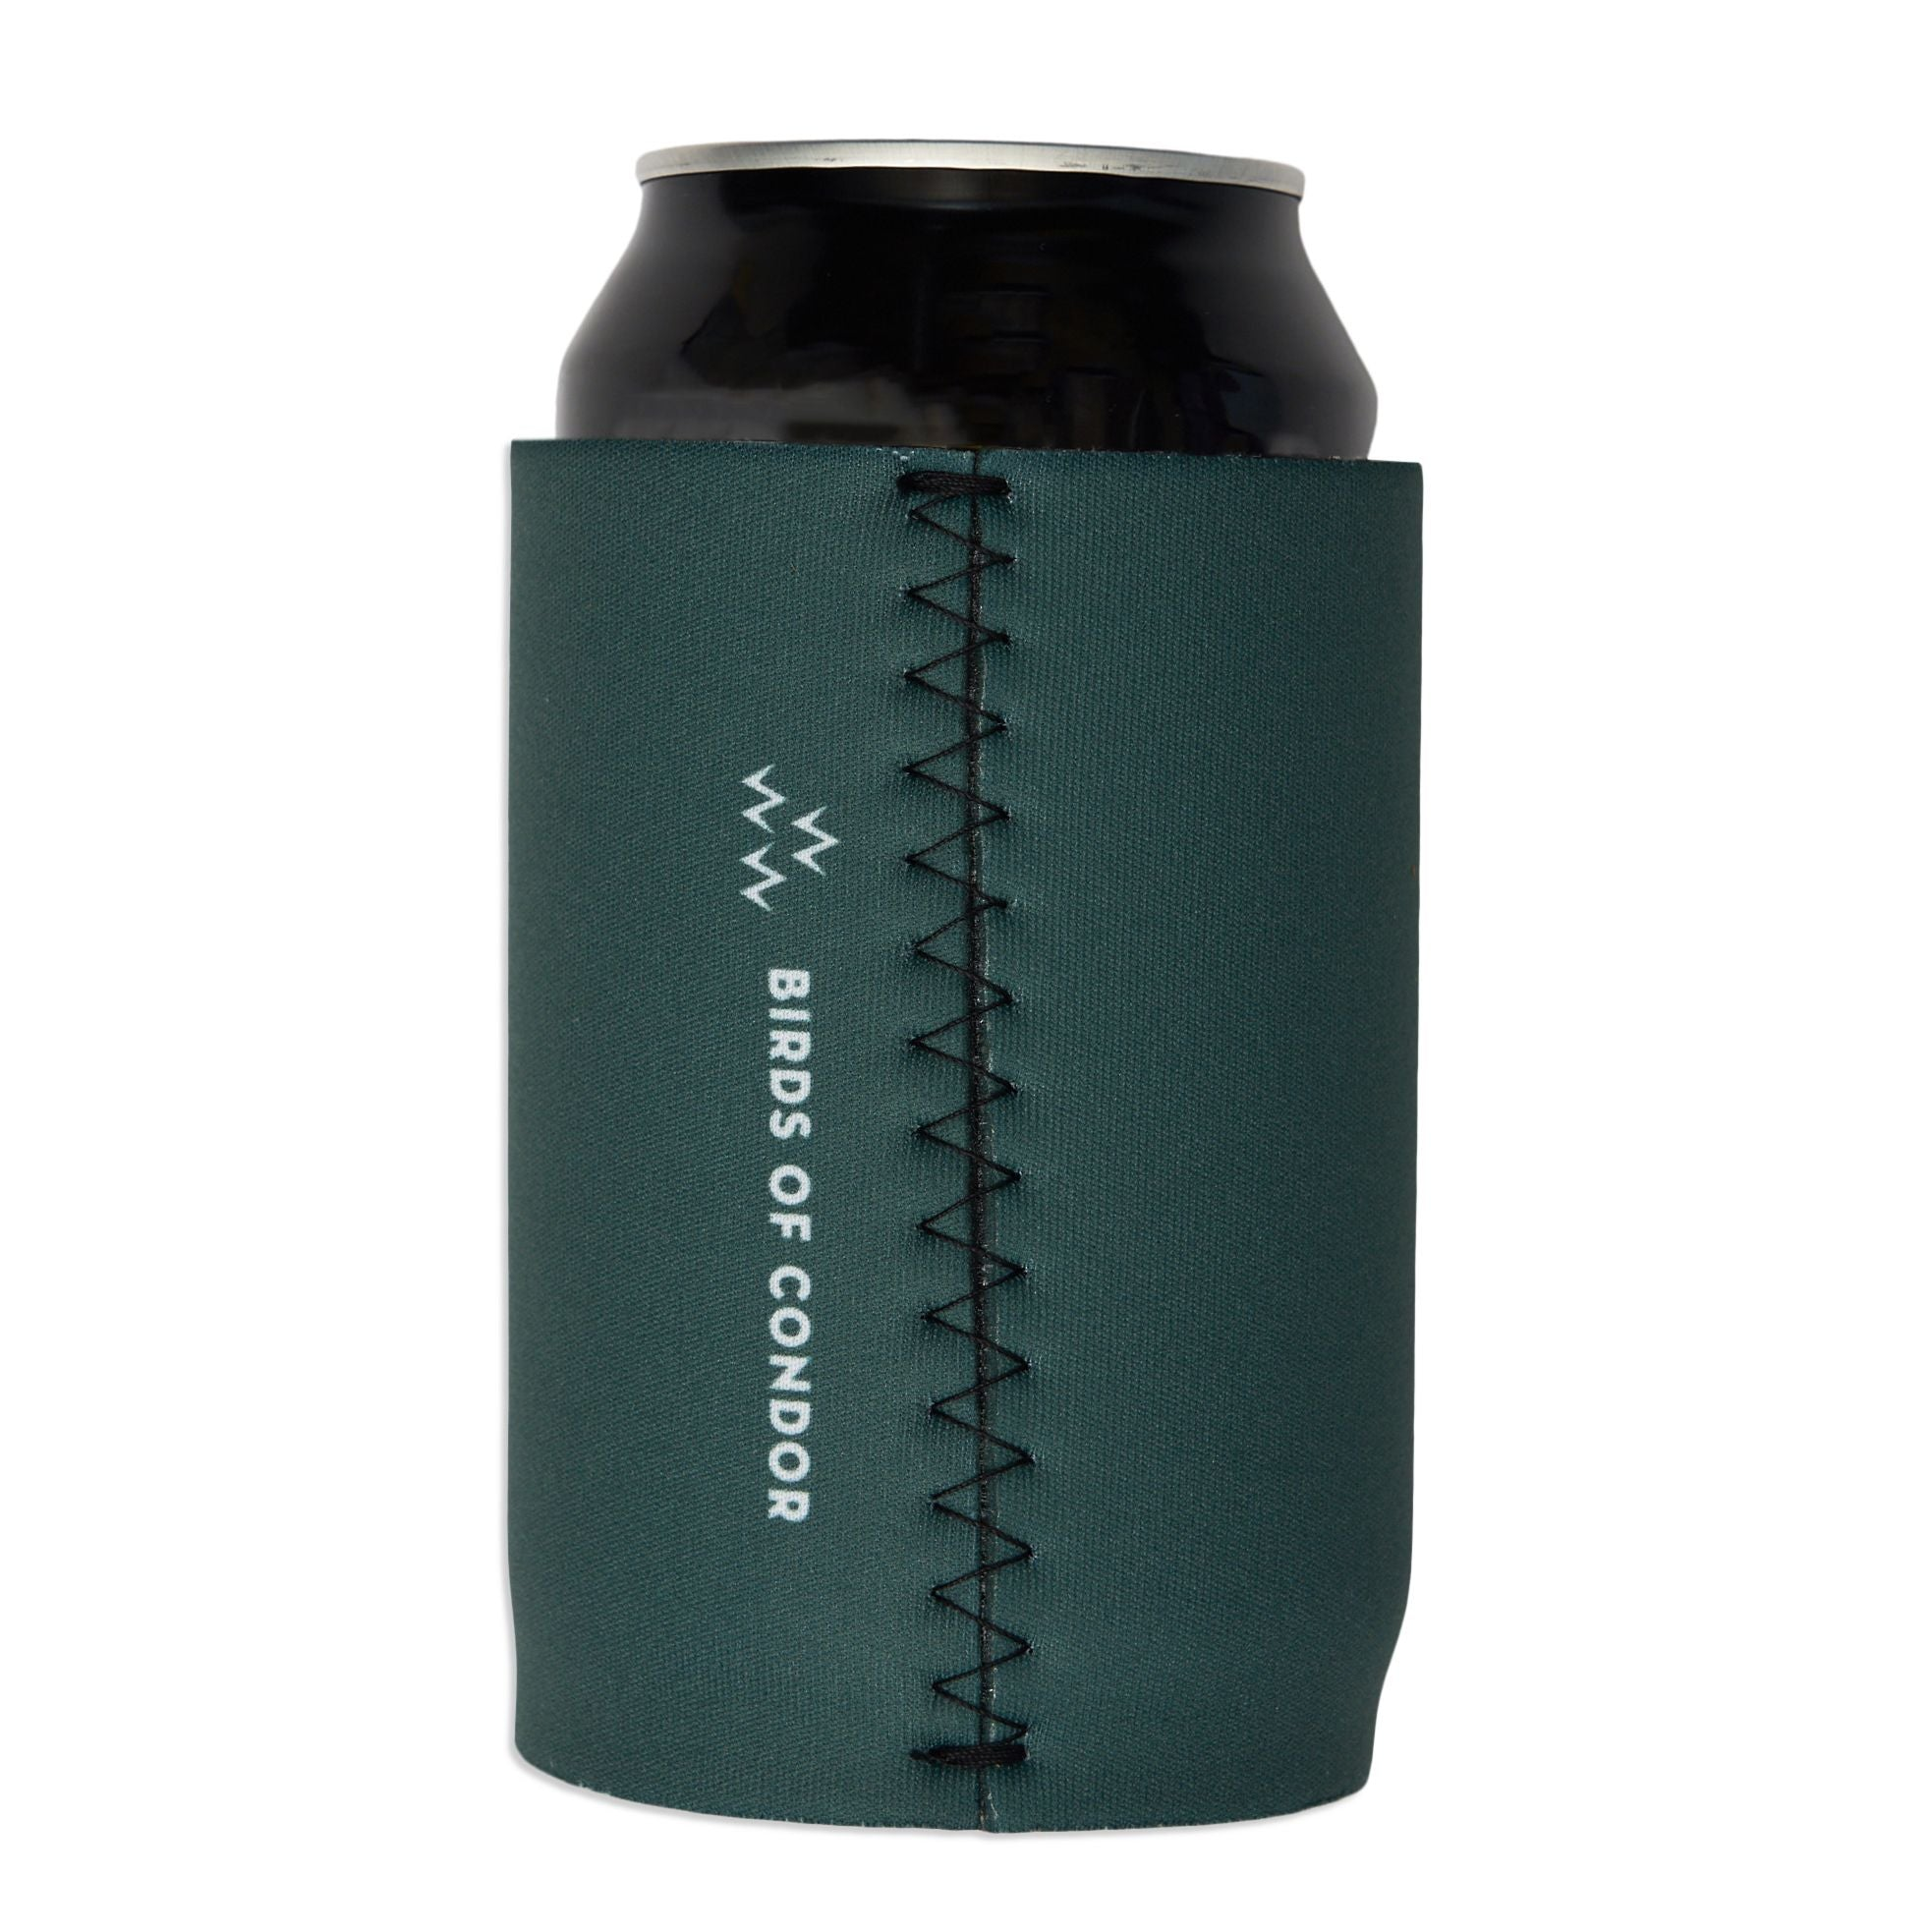 birds-of-condor-golf-shot-tracer-hemp-beer-stubby-cooler-koozie